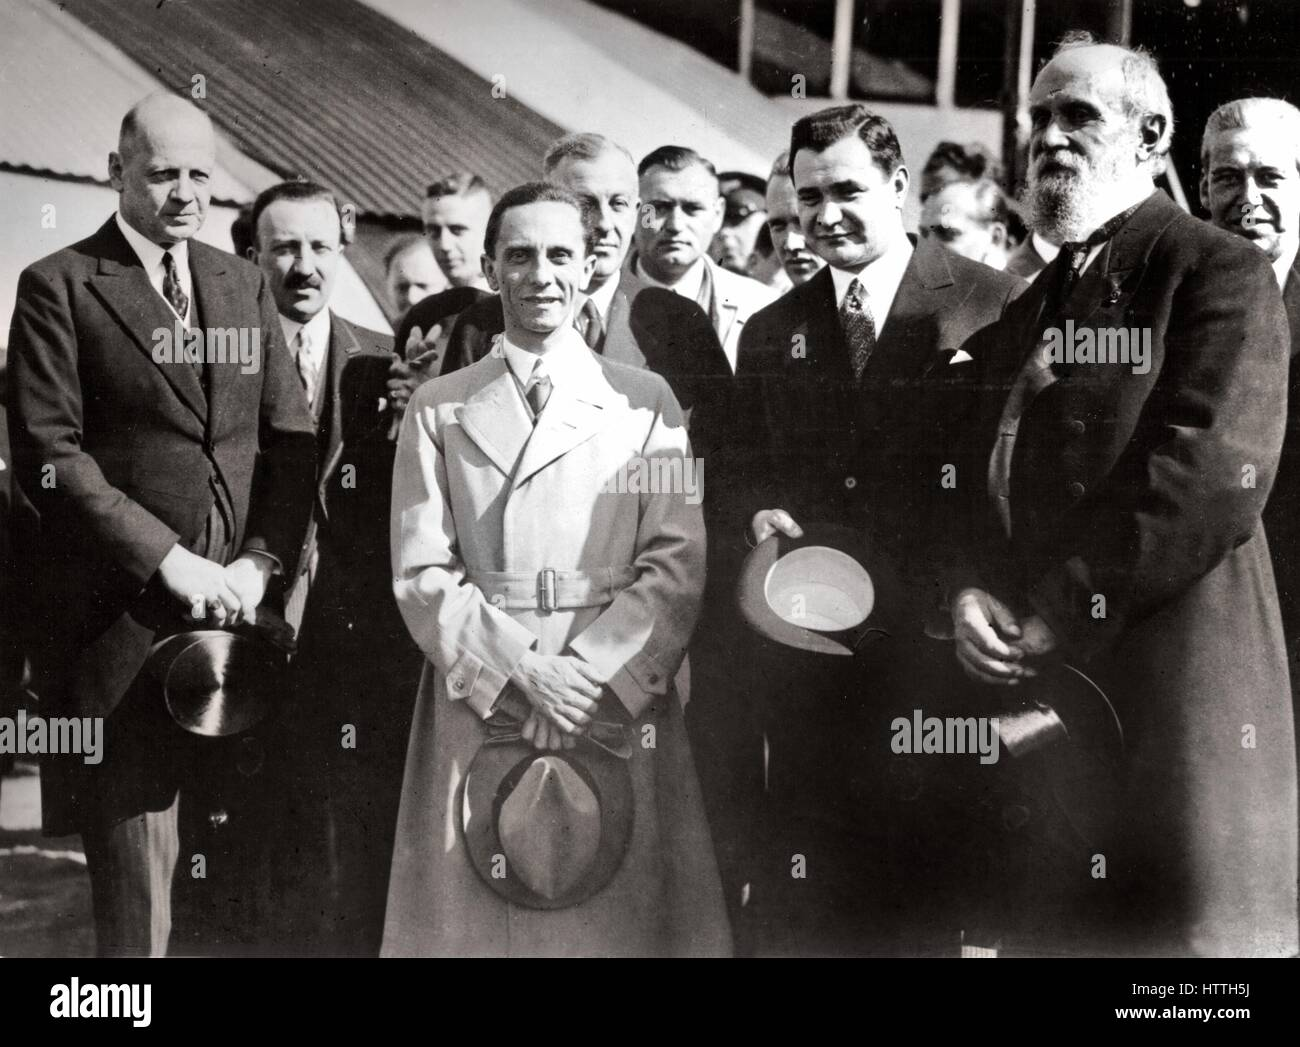 Goebbels in Warsaw. On his left, Von Moltke, June 1934, Germany. (Photo by: Photo12/UIG via Getty Images) - Stock Image